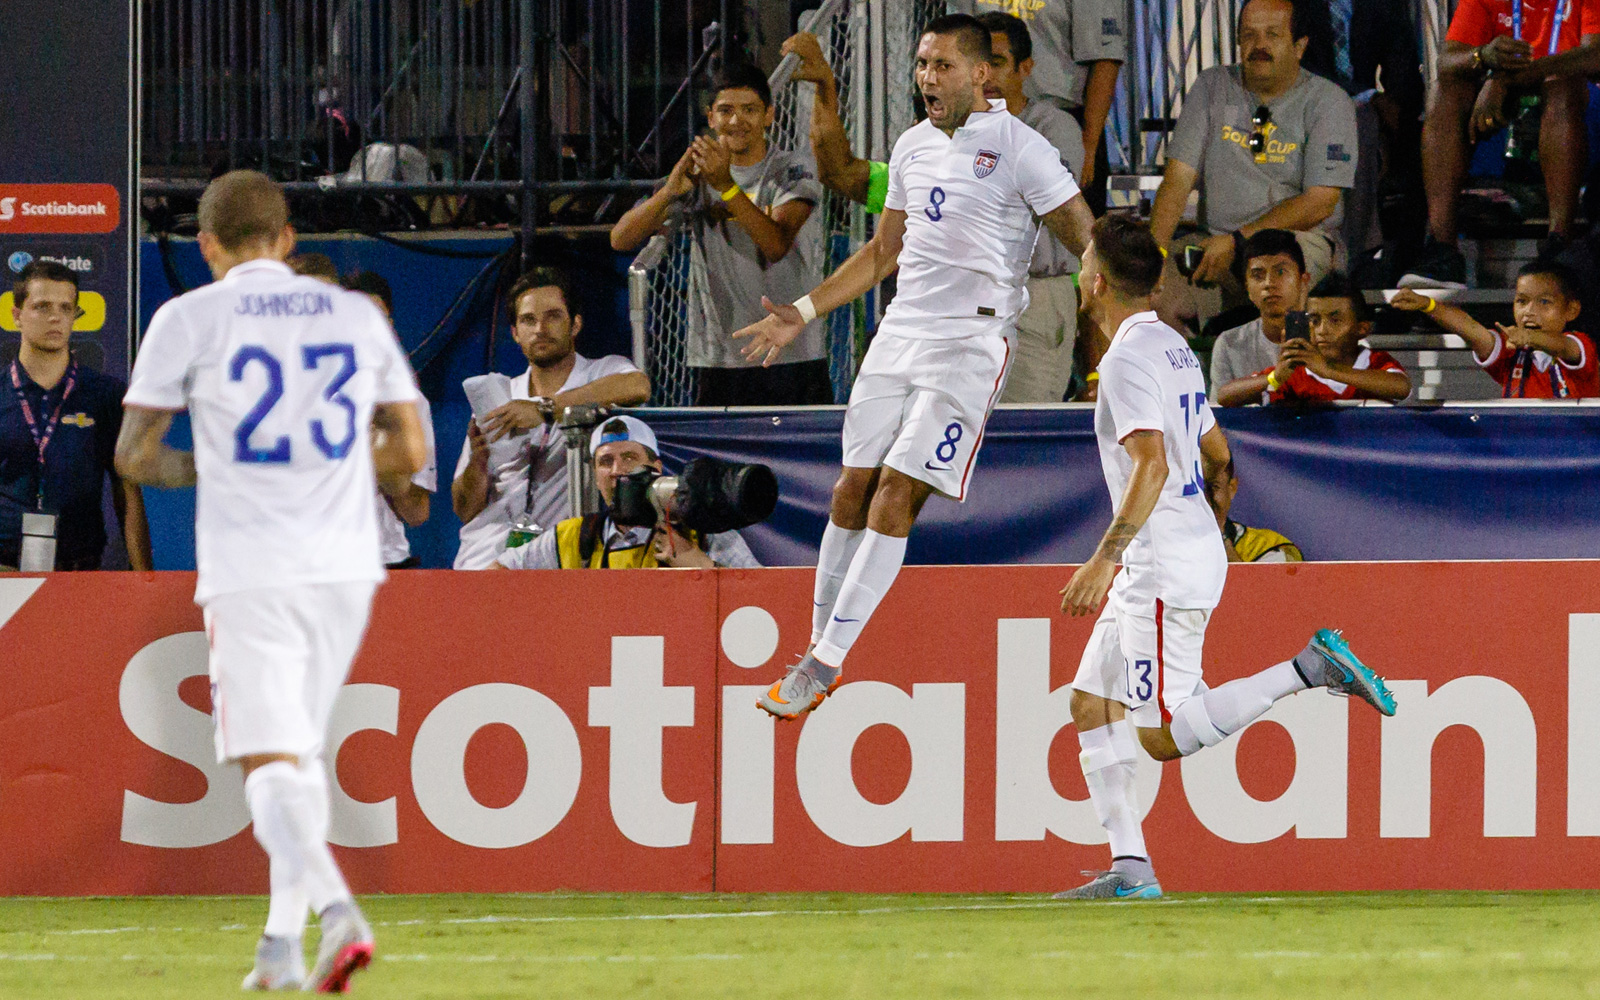 Clint Dempsey leaps in celebration of his second goal in the USA's Gold Cup opener against Honduras. The Americans won 2-1, fending off a late Honduras surge to collect all three points in the start of their title defense.